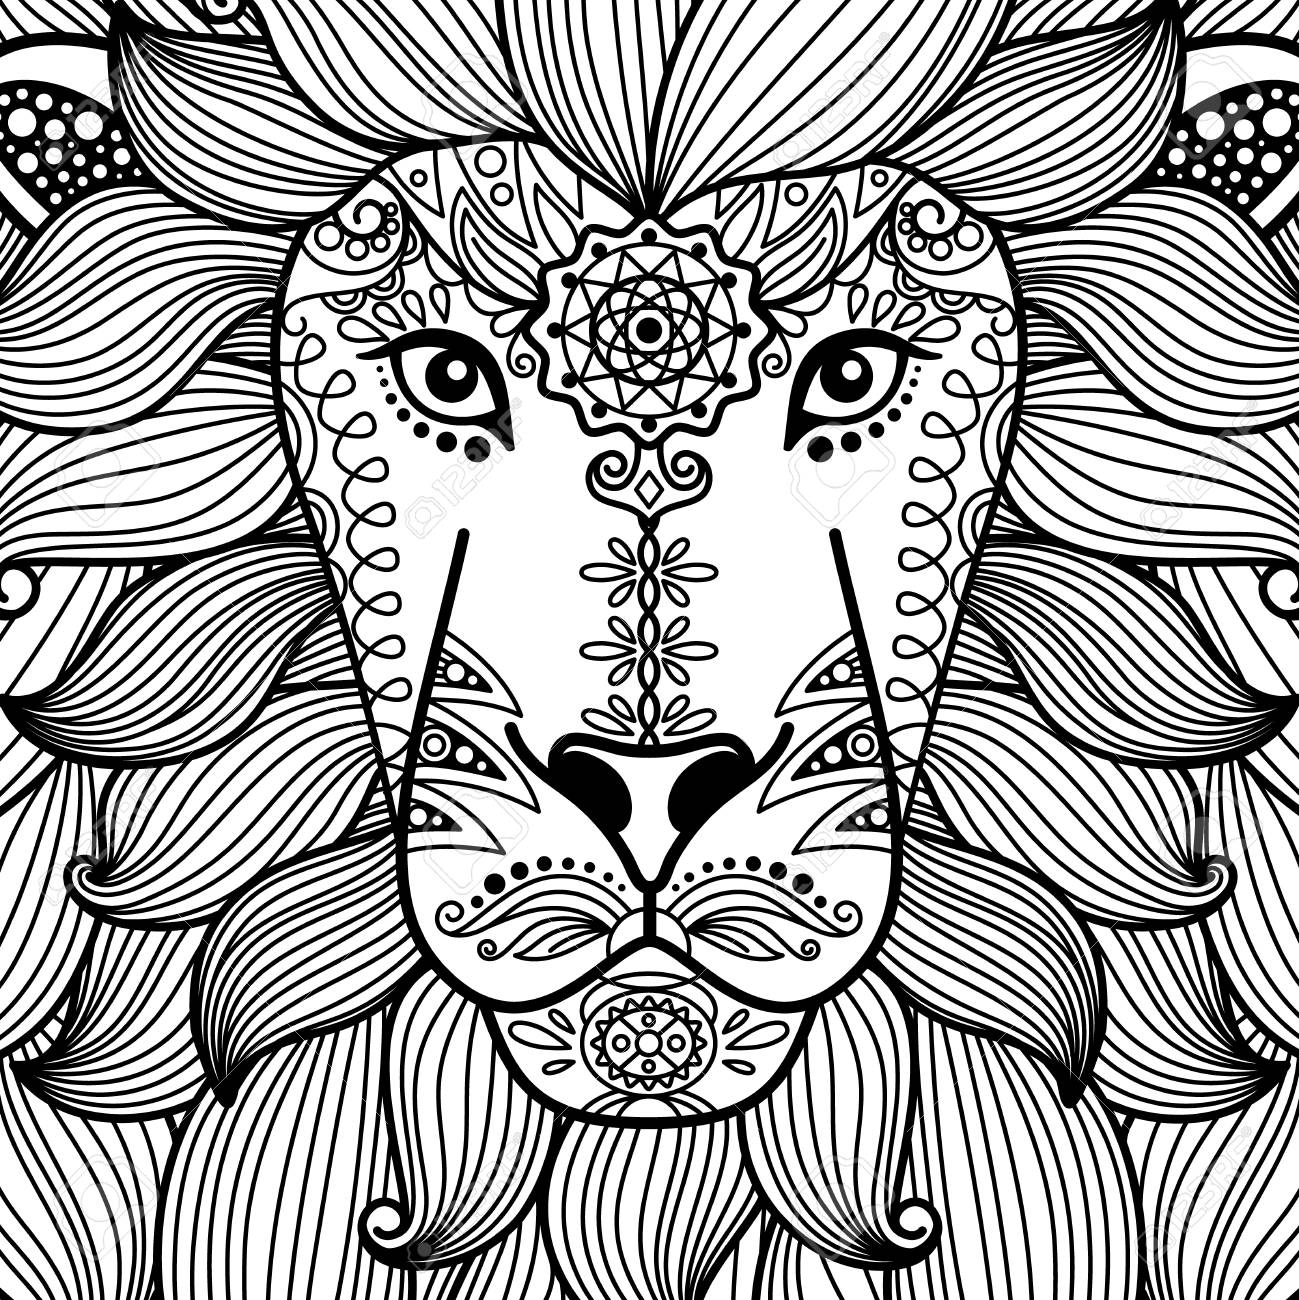 1299x1300 Tribal Ornamental Black And White Lion Head. Vector Illustratoin